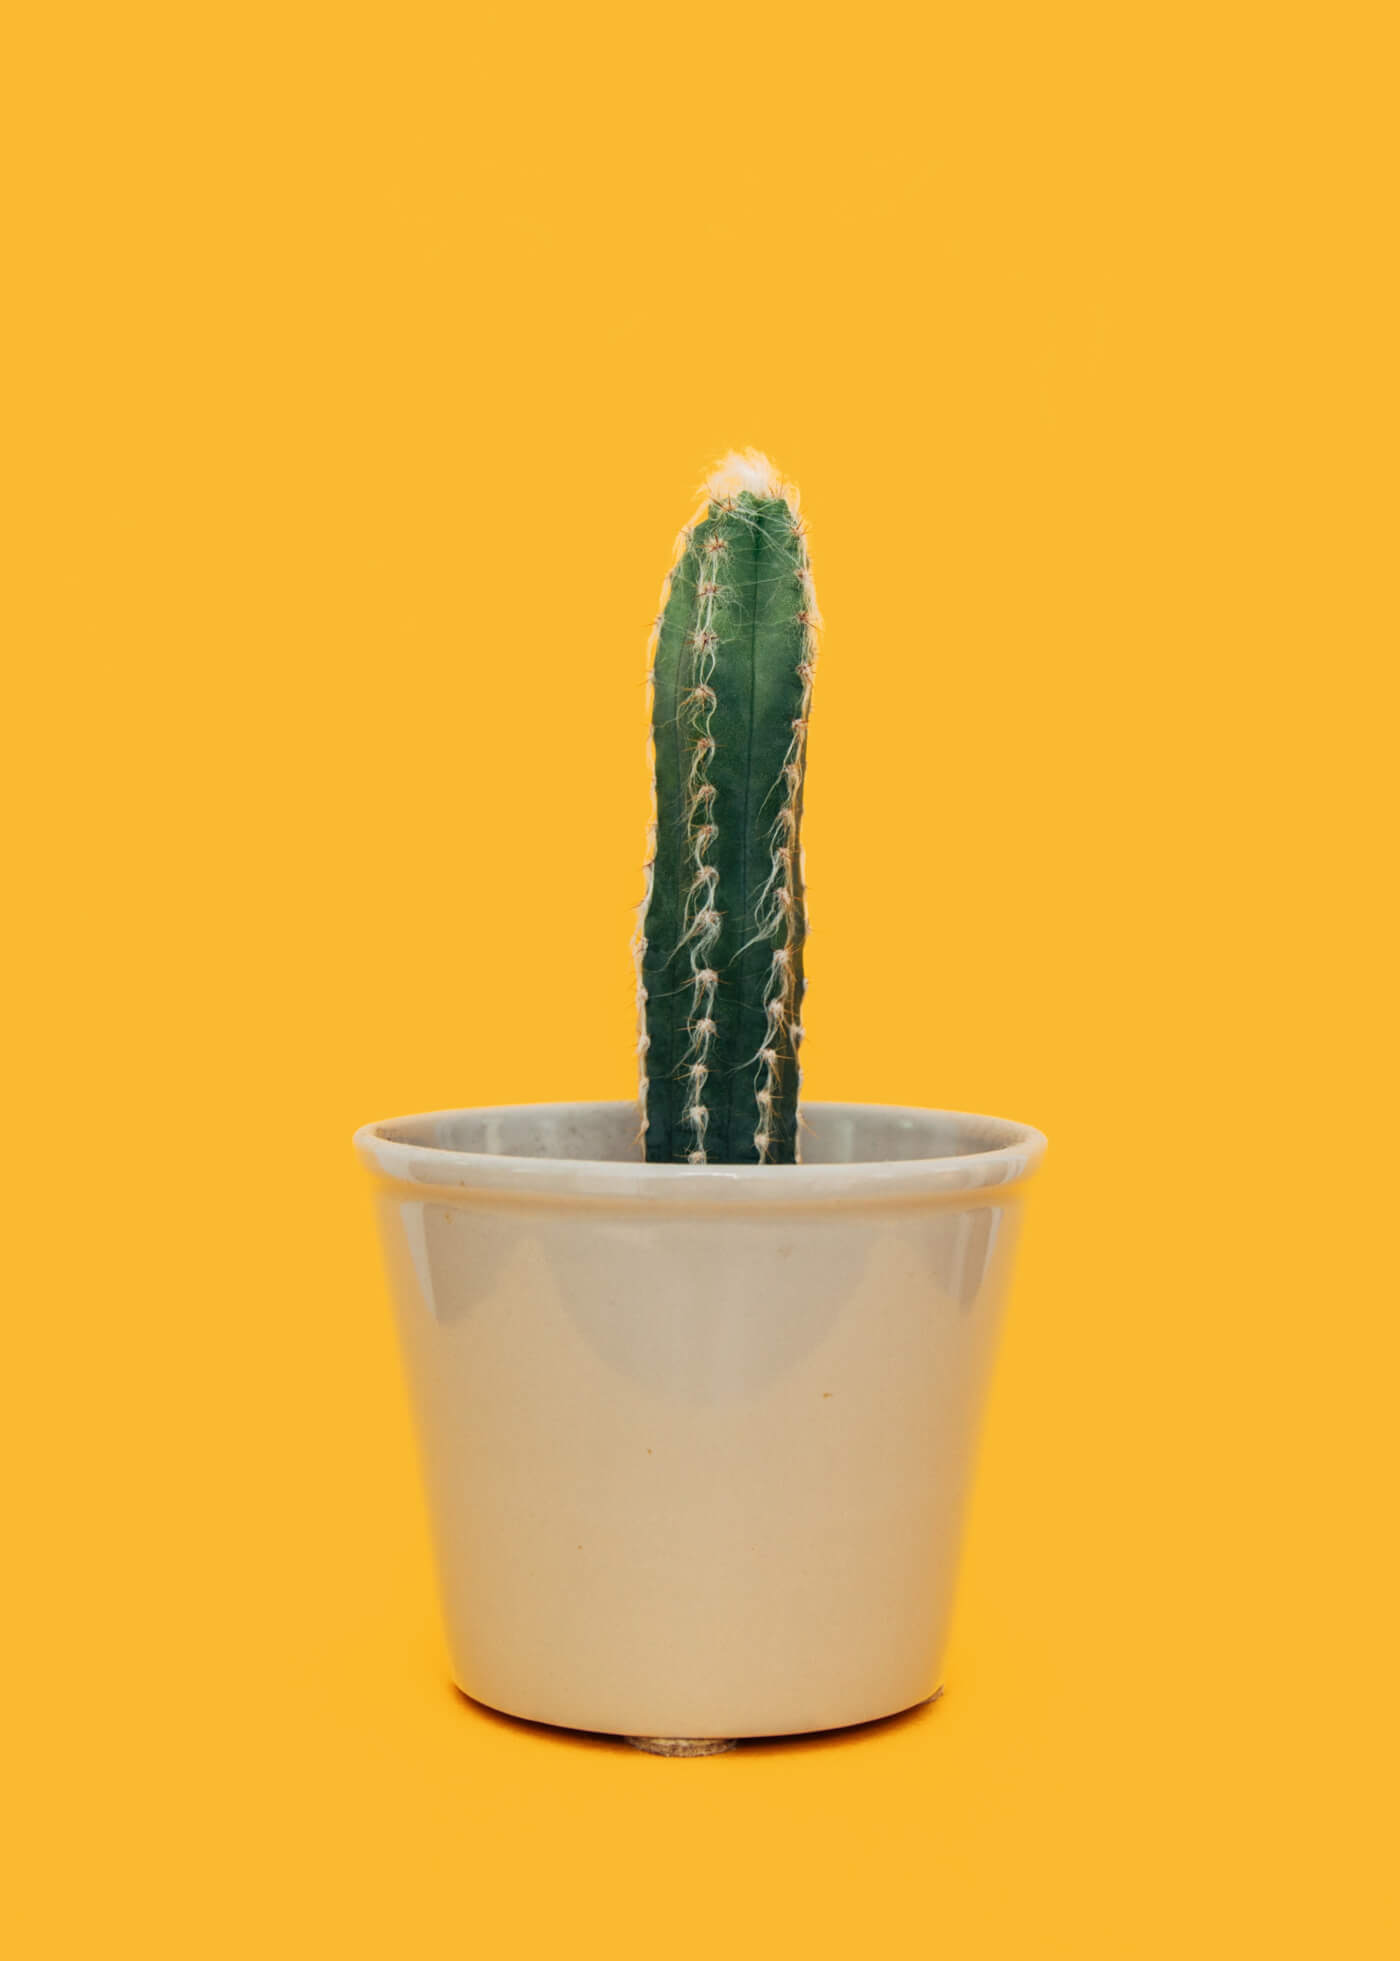 a photo of a cactus in a pot on a yellow background